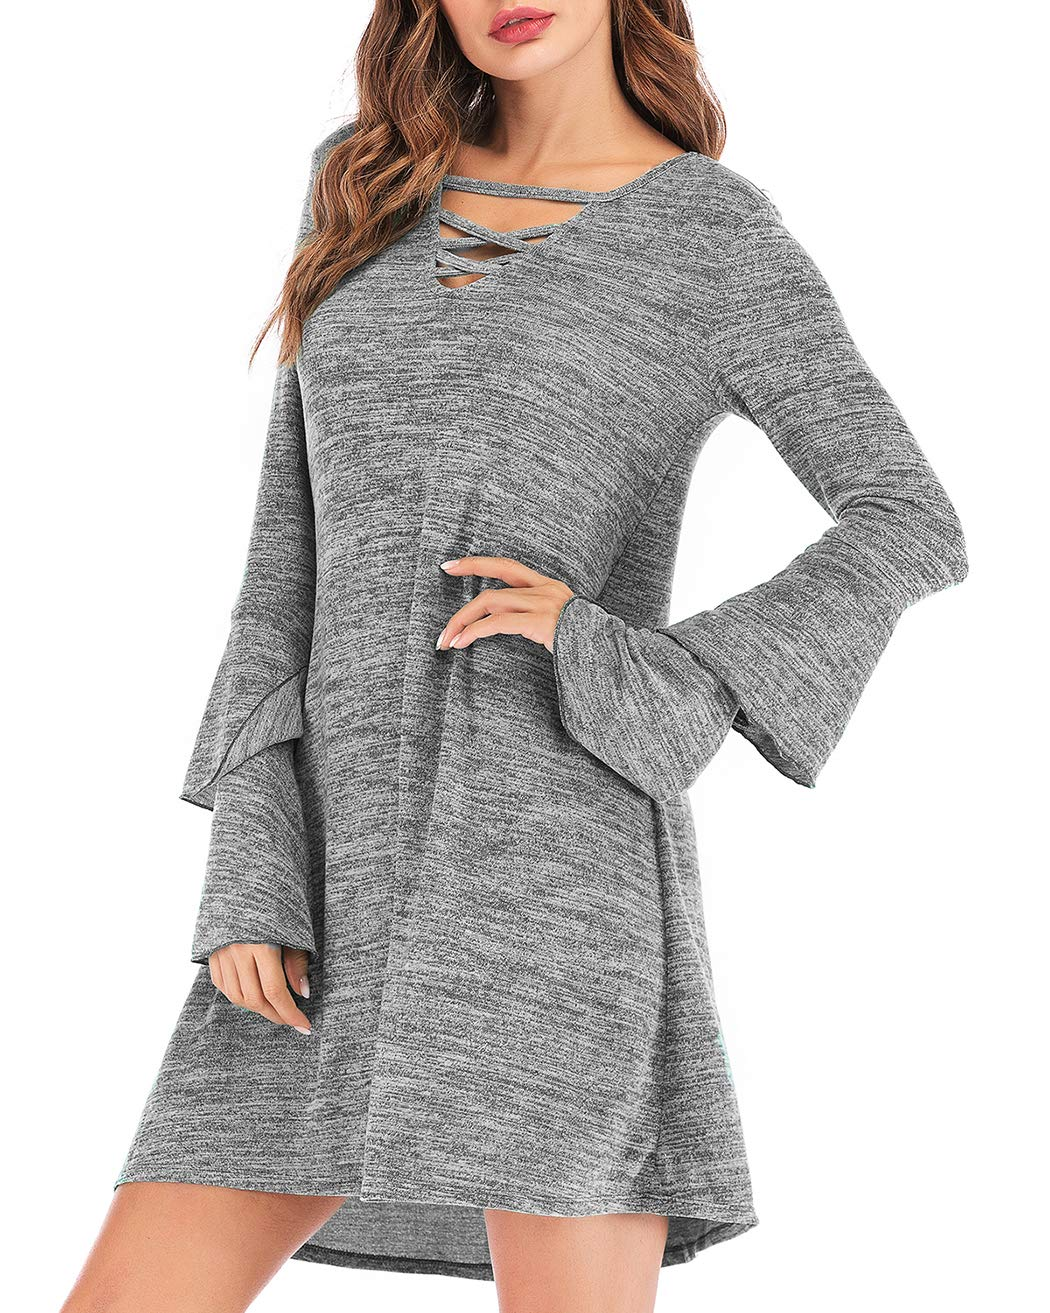 Eanklosco Women's Sweater Dress Flare Long Sleeve Knit Jumper Tops Criss Cross V Neck Loose Swing Tunic Dress (Gray, 2XL)